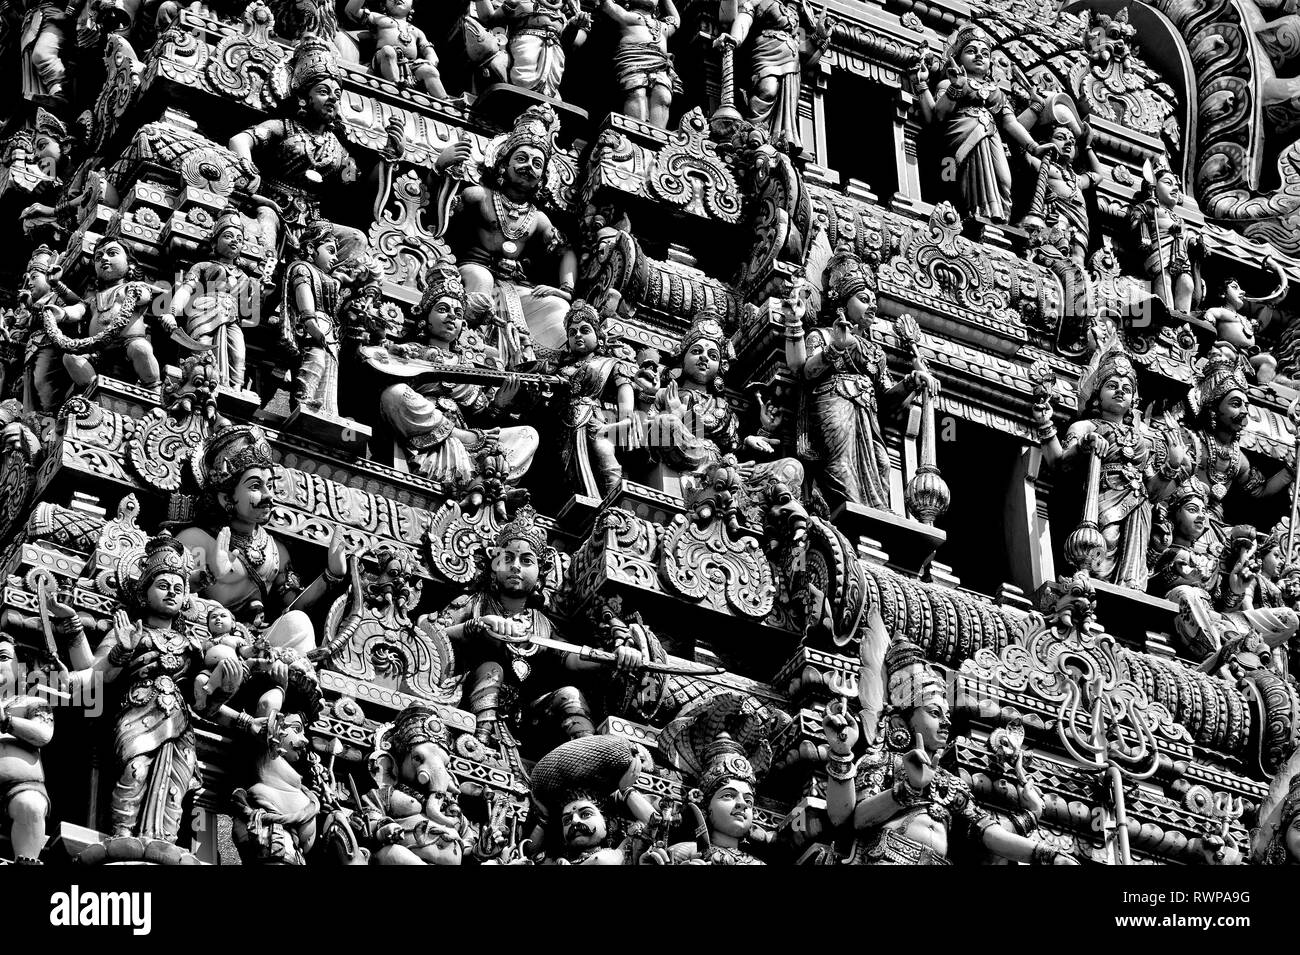 Perspective view of ancient temple tower with stone statues depicting Indian Hindu Gods and Deities on the exterior of an old temple in Little India, Stock Photo